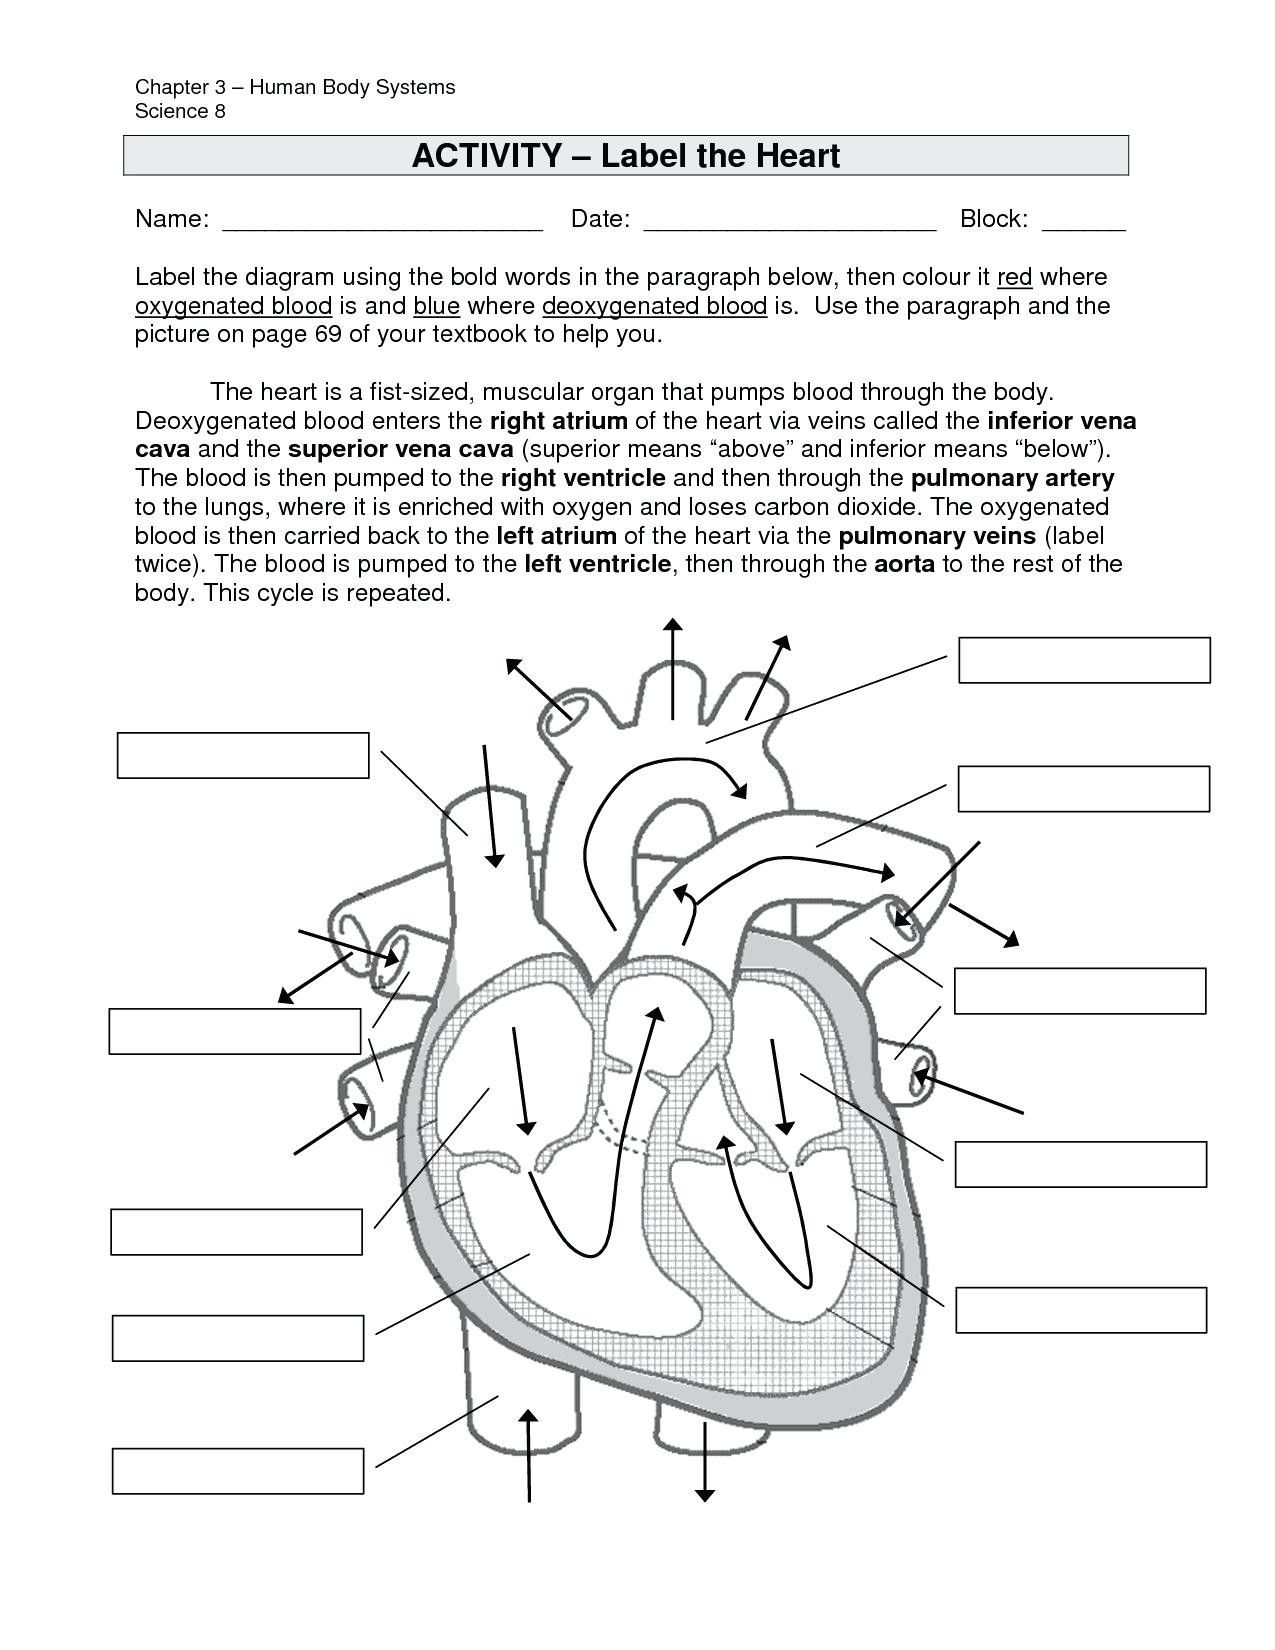 Image Result For Anatomy Labeling Worksheets With Images Heart